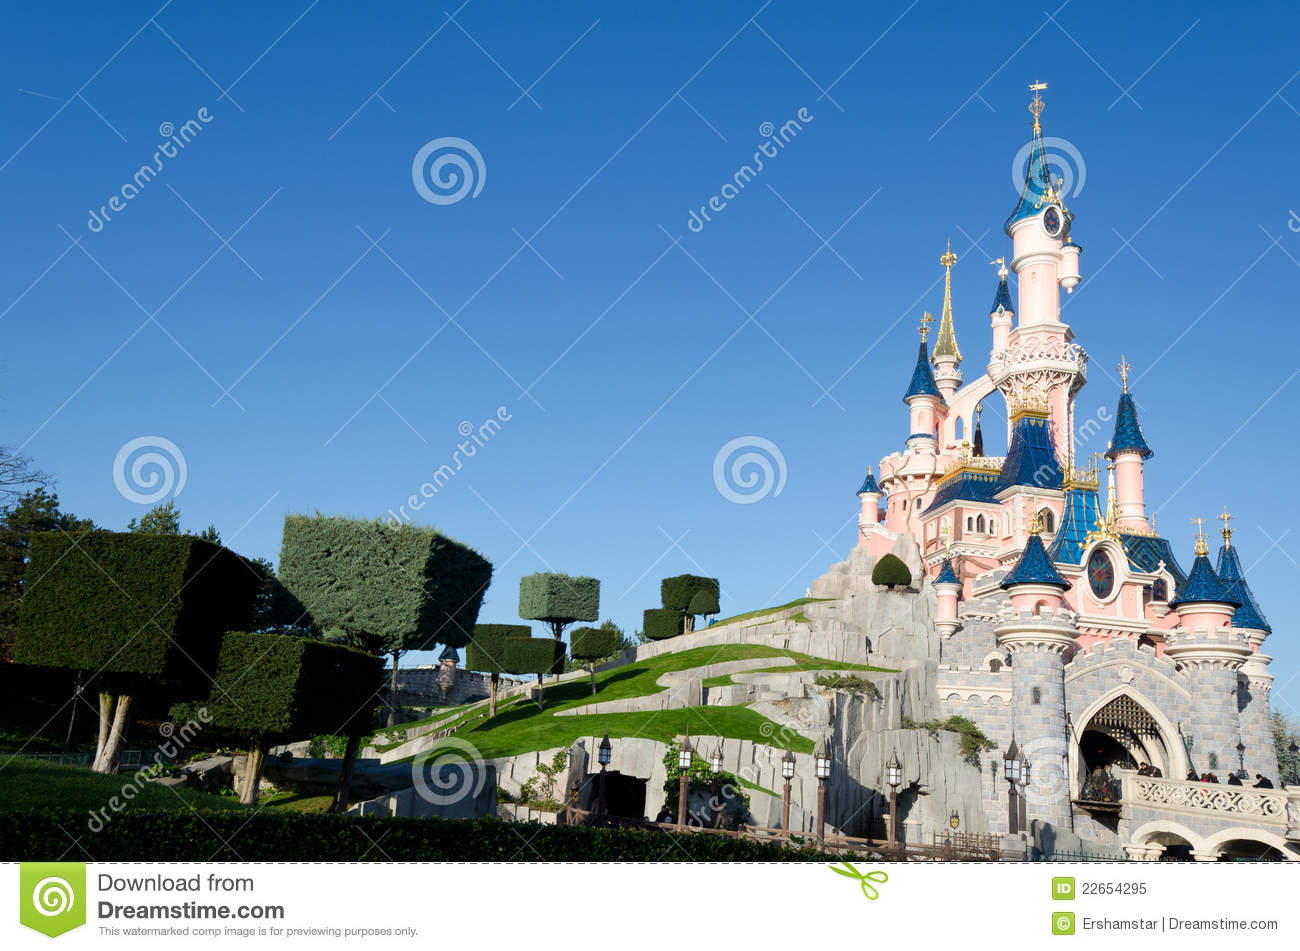 Disneyland paris castle editorial image